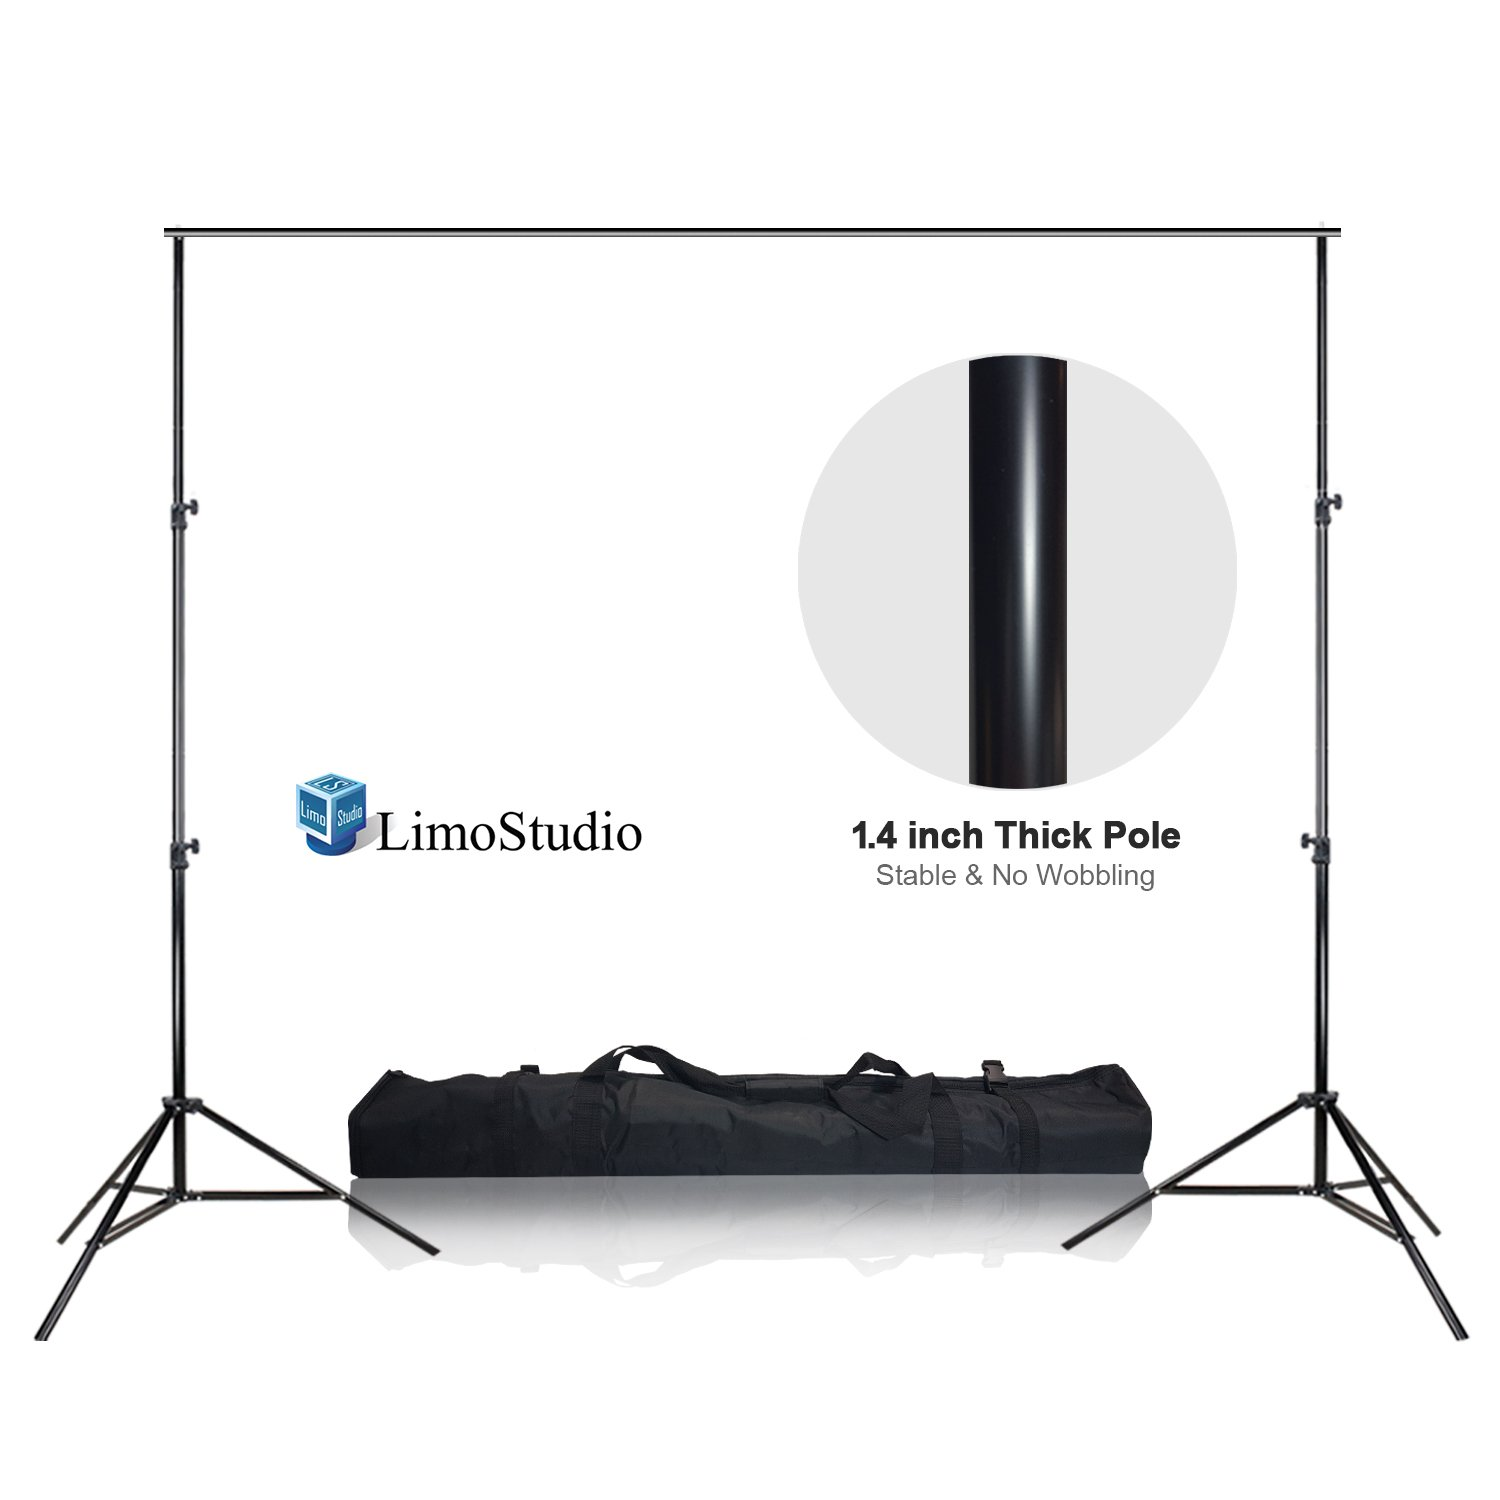 LimoStudio 10 x 12ft Heavy Duty Backdrop Support System, AGG1782 by LimoStudio